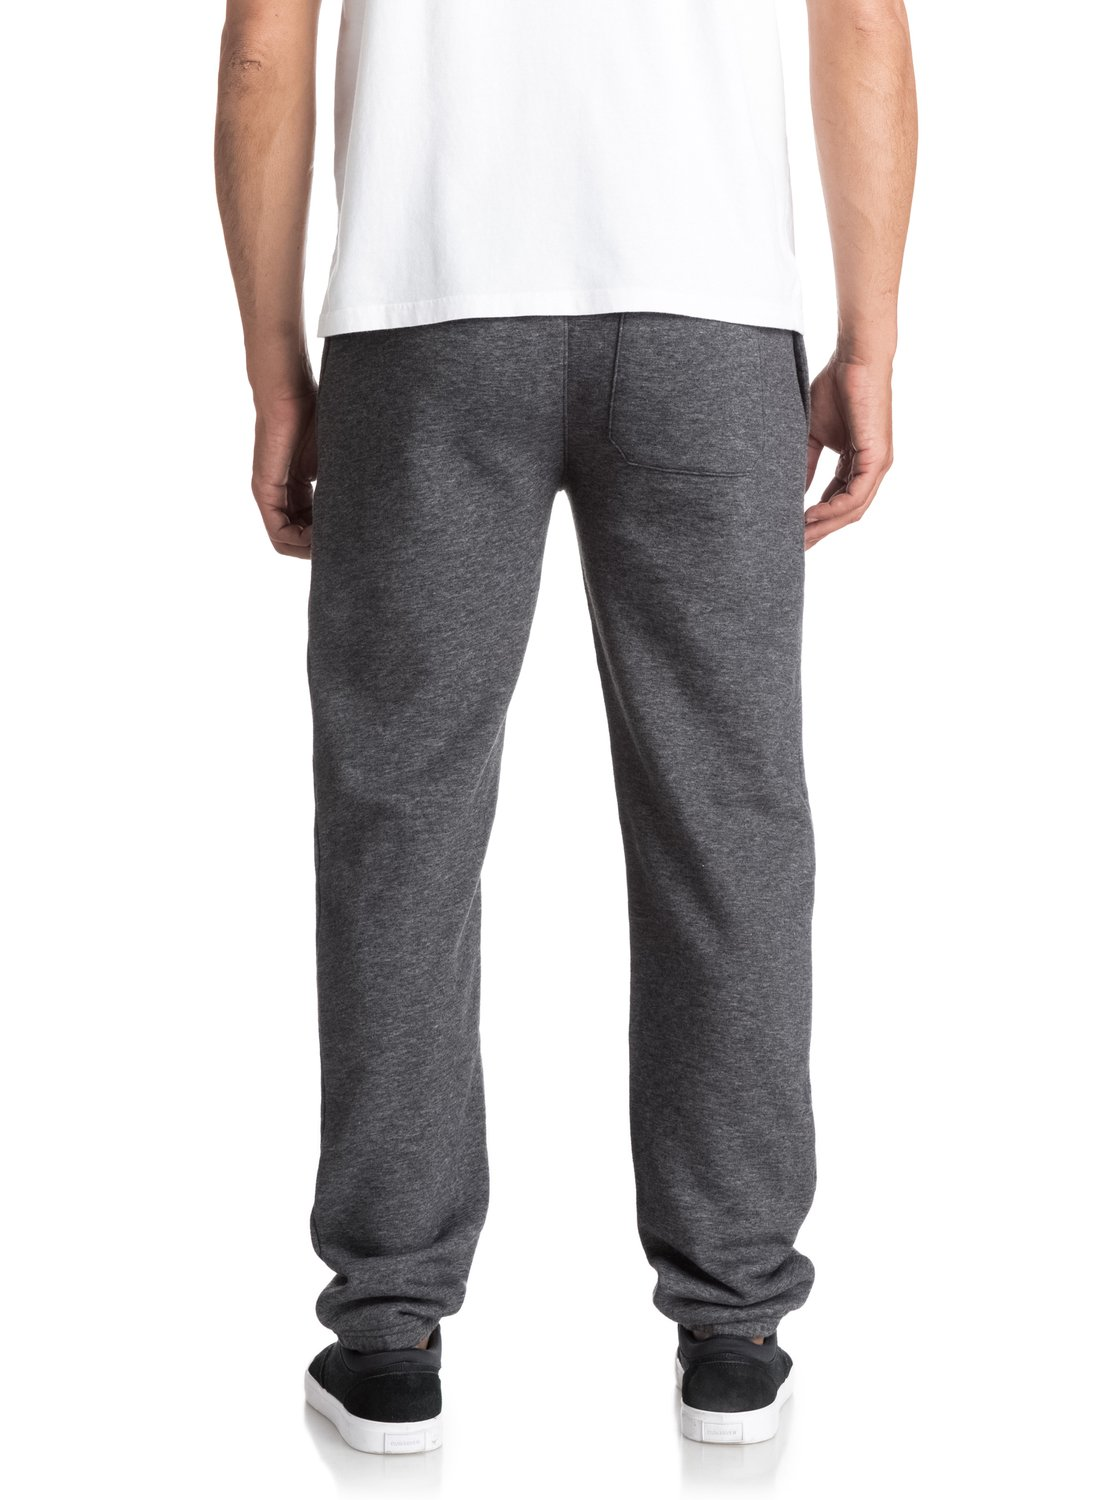 a2a5ef26 5 Everyday - Tracksuit Bottoms EQYFB03059 Quiksilver